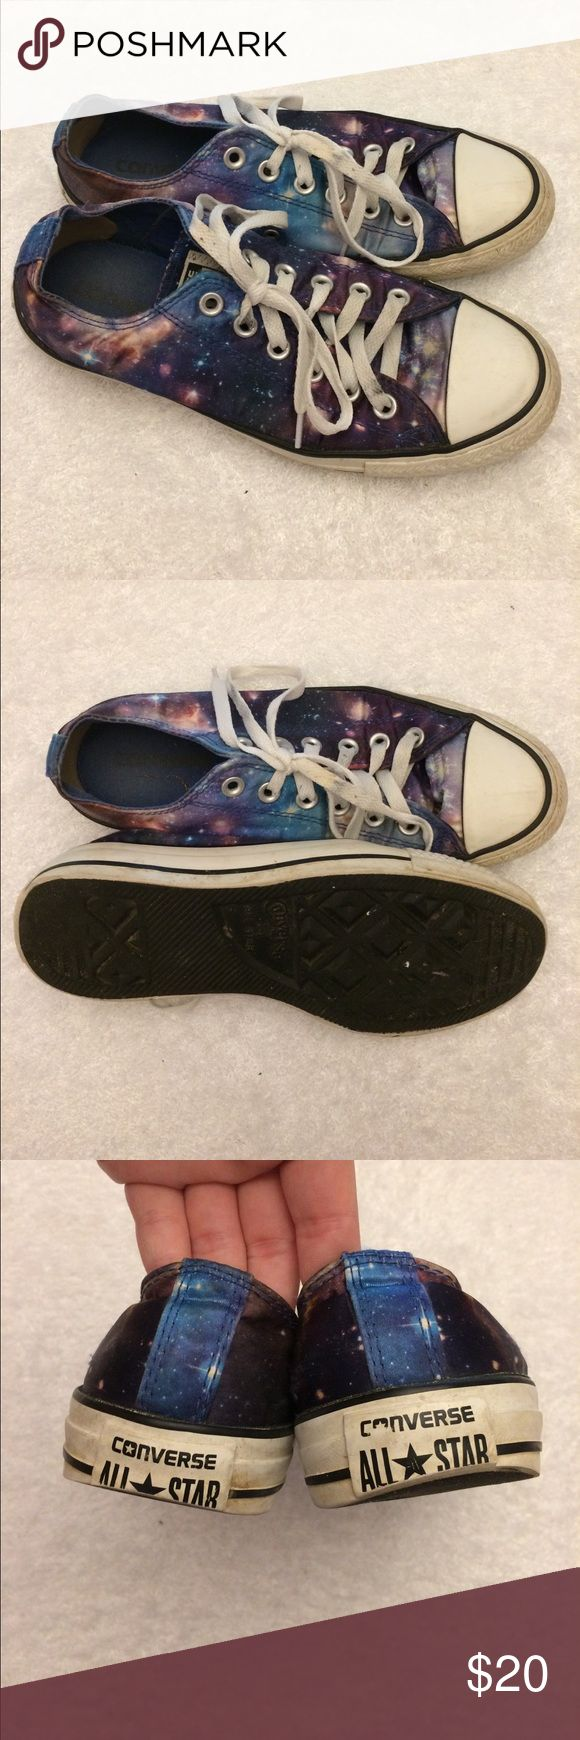 "Galaxy Converse size women's 8 Galaxy Converse All Stars ""chucks"" size 8 women's/ 6 men's! Have been worn regularly but have a lot of life left in them! They have a heel patch to protect from blisters. Converse Shoes Sneakers"